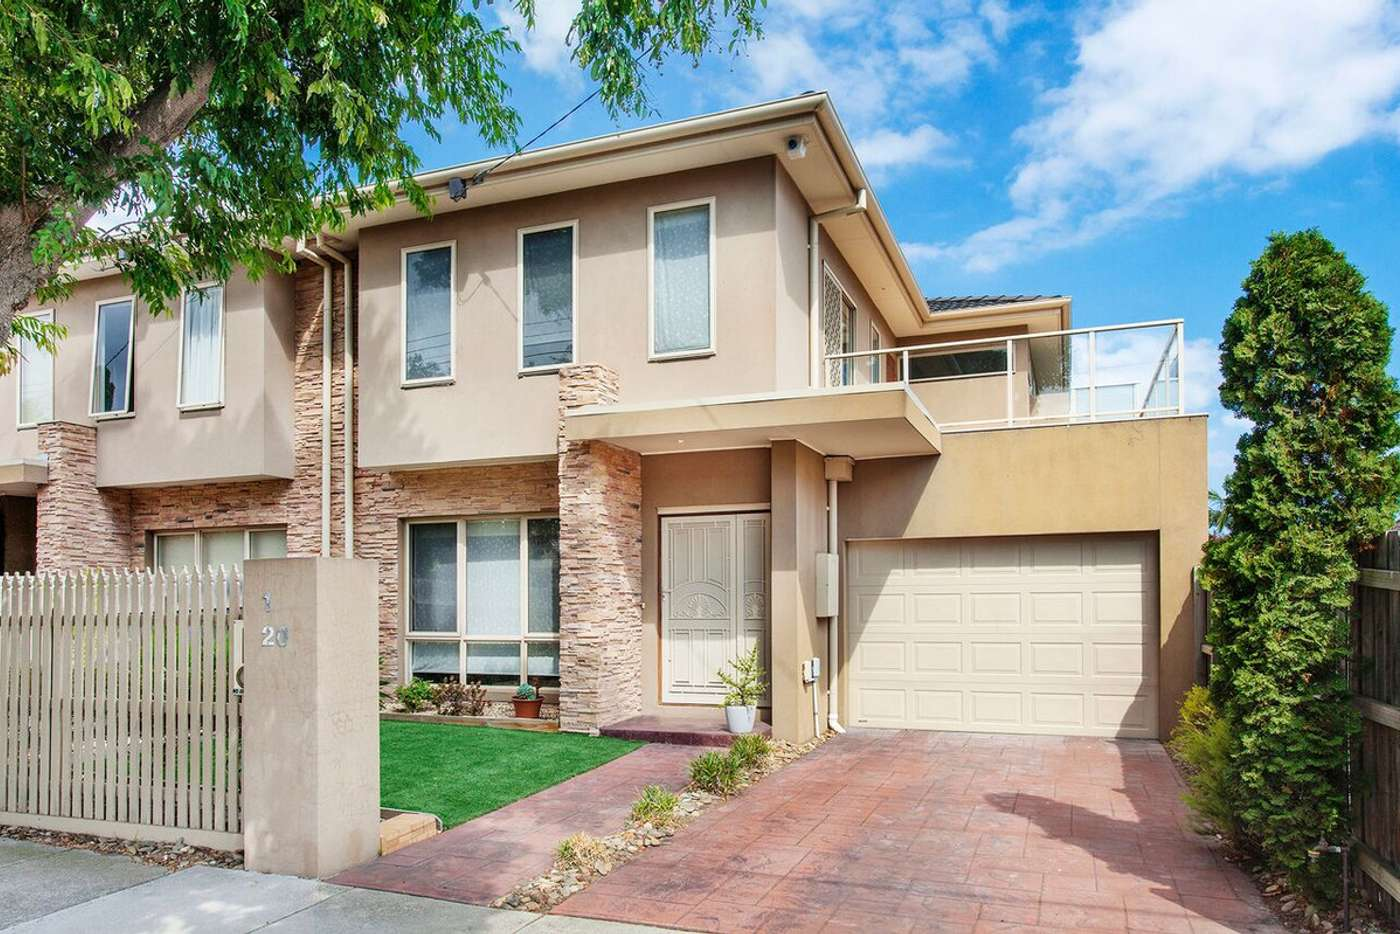 Main view of Homely house listing, 1/20 Park Avenue, Glen Huntly VIC 3163